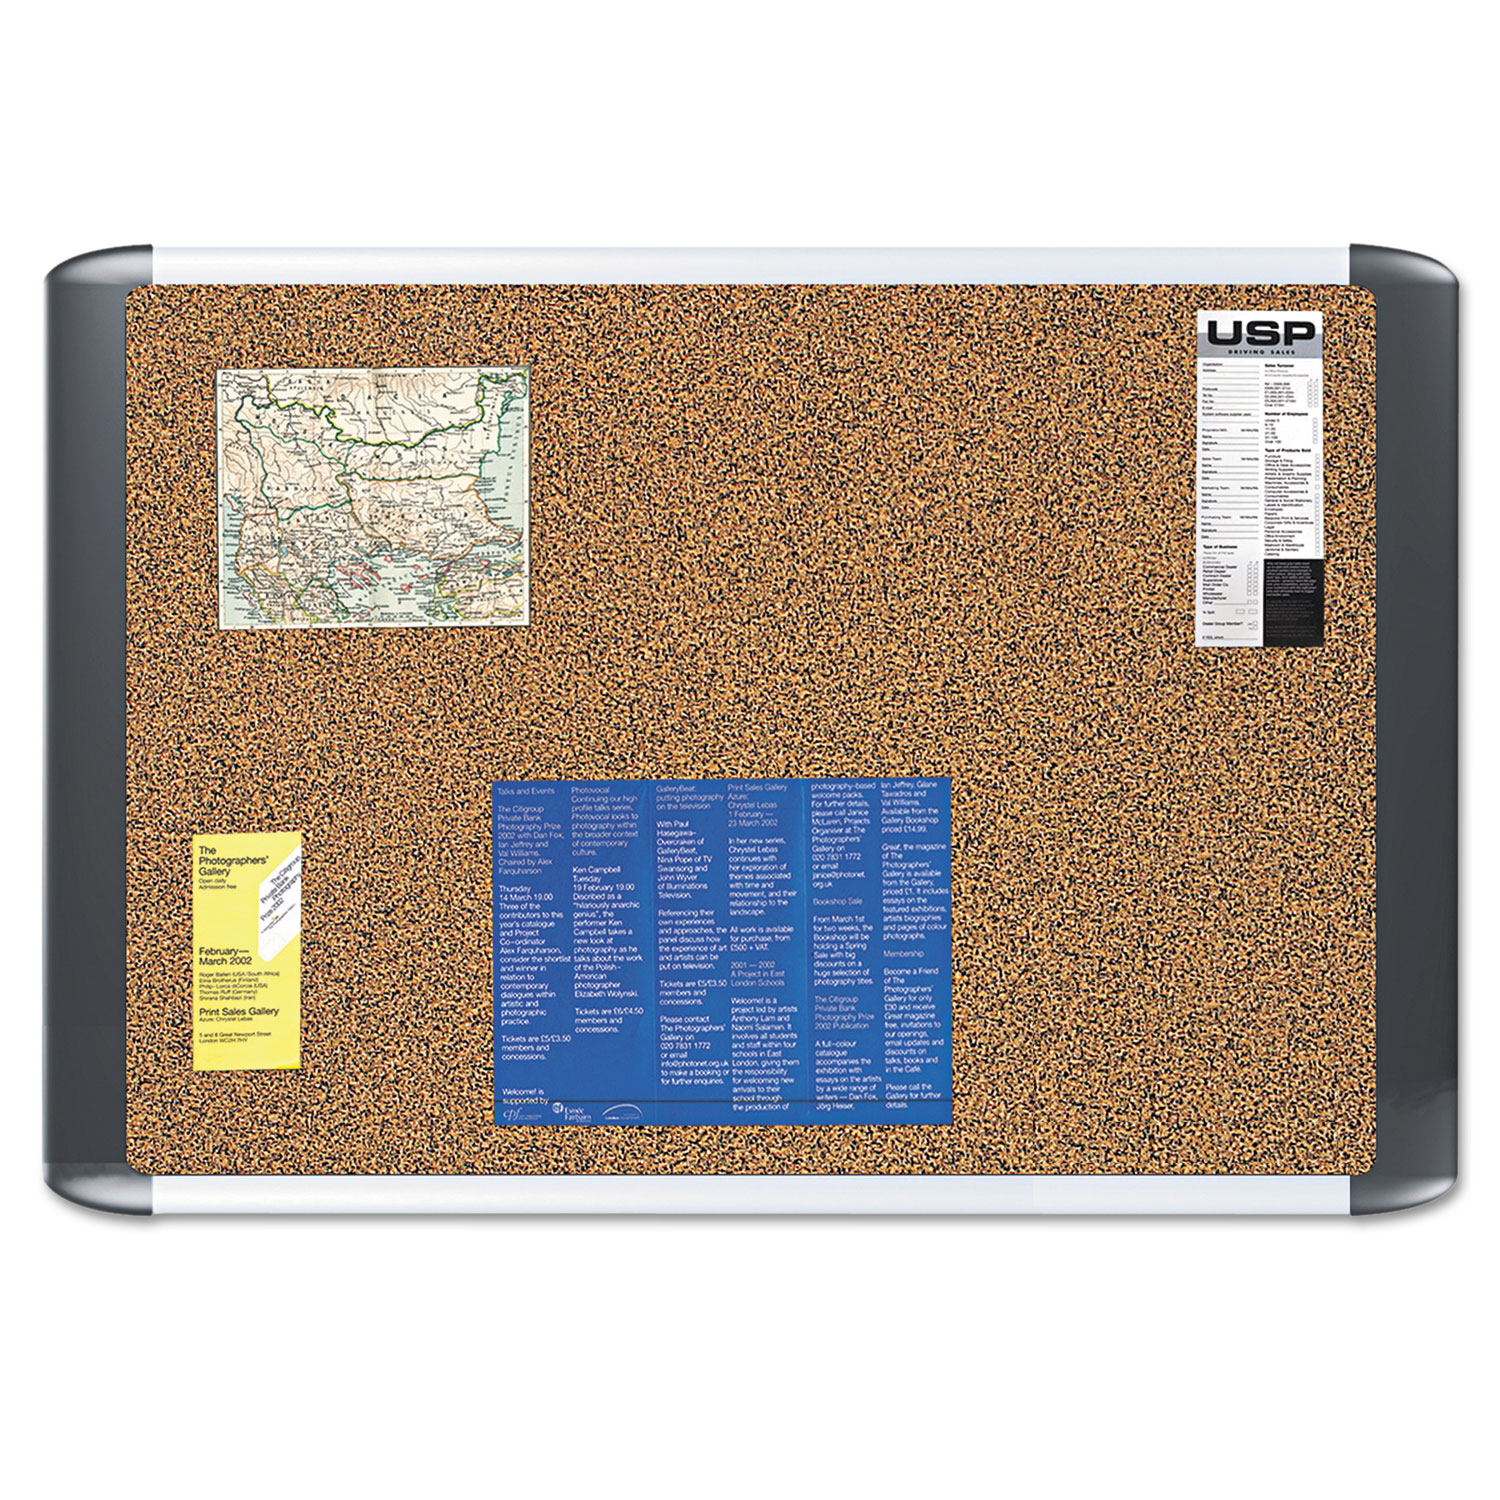 Tech Cork Board 24x36 Silver Black Frame